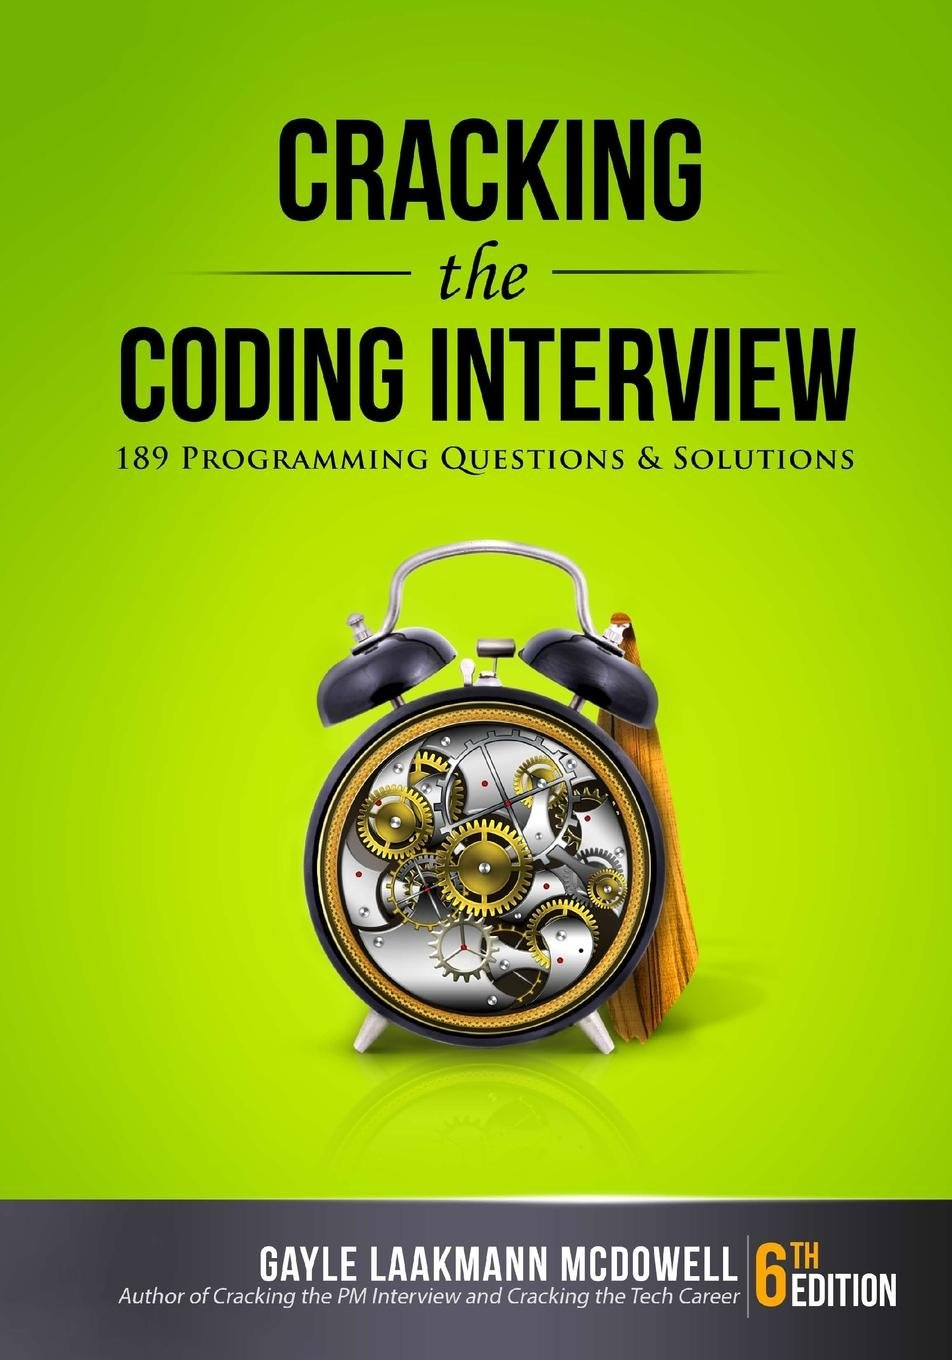 Book: Cracking the Coding Interview: 189 Programming Questions and Solutions by Gayle Laakmann McDowell